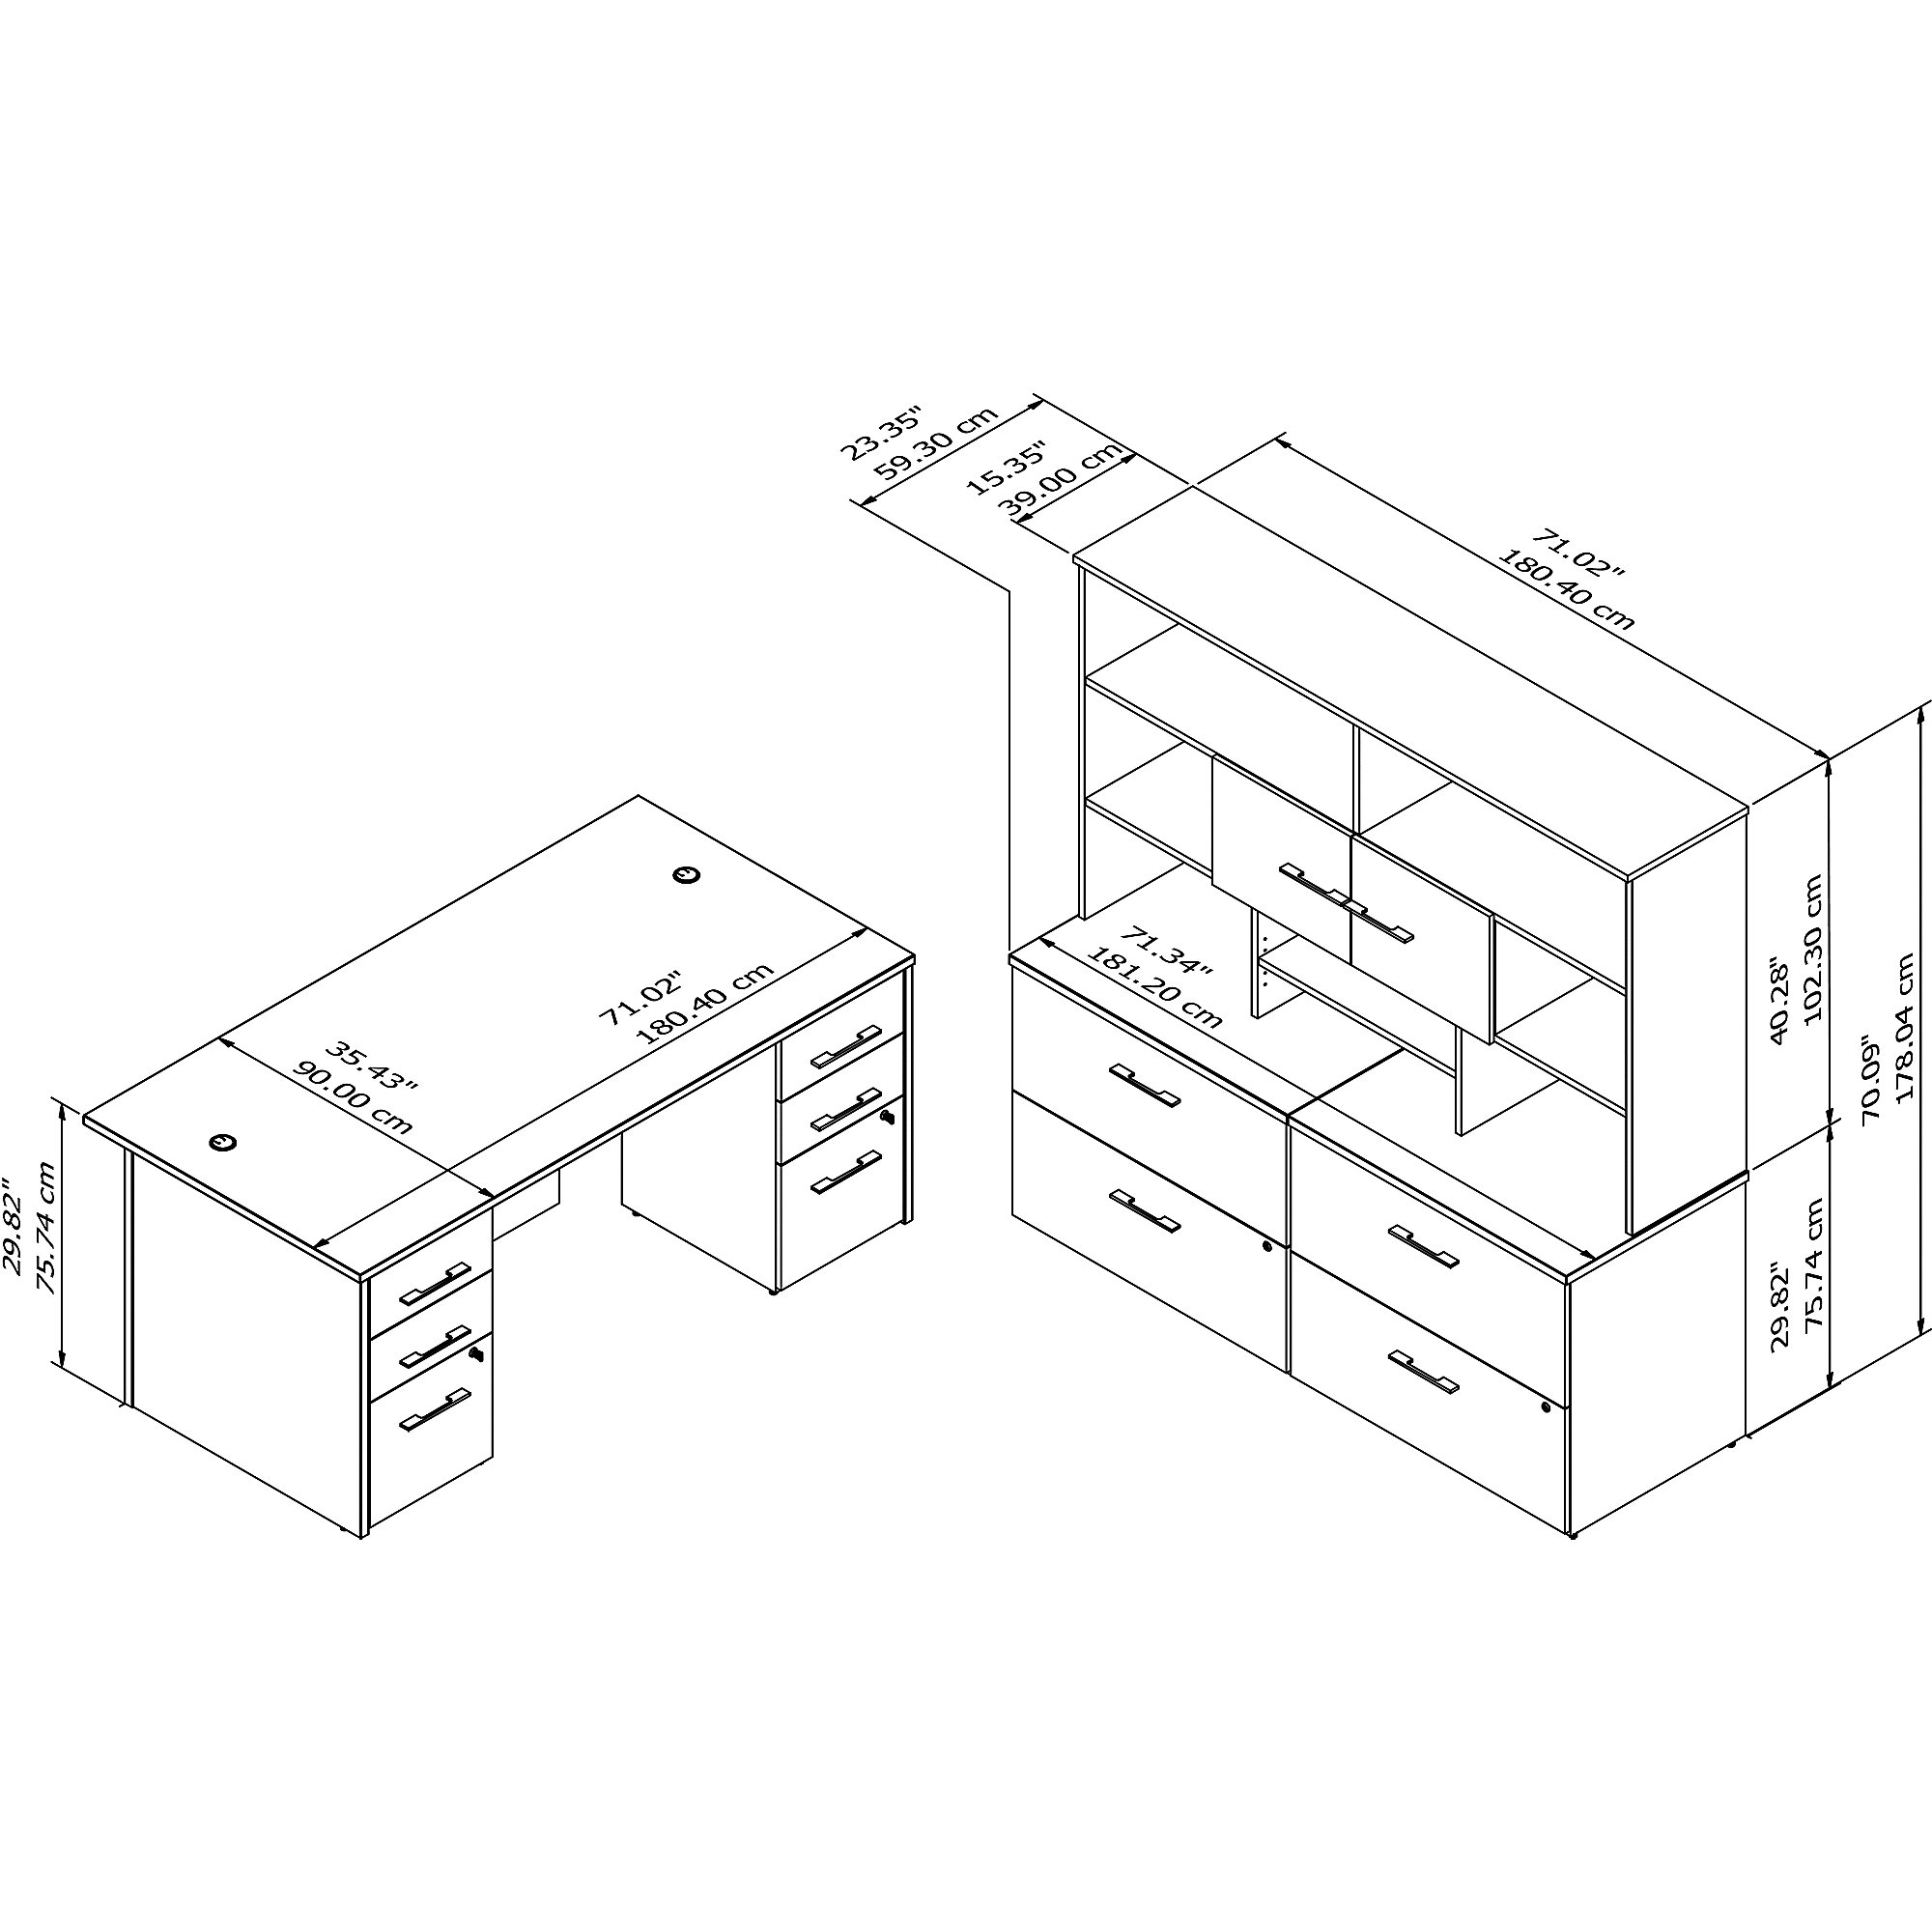 office 500 executive suite line drawing and dimensions